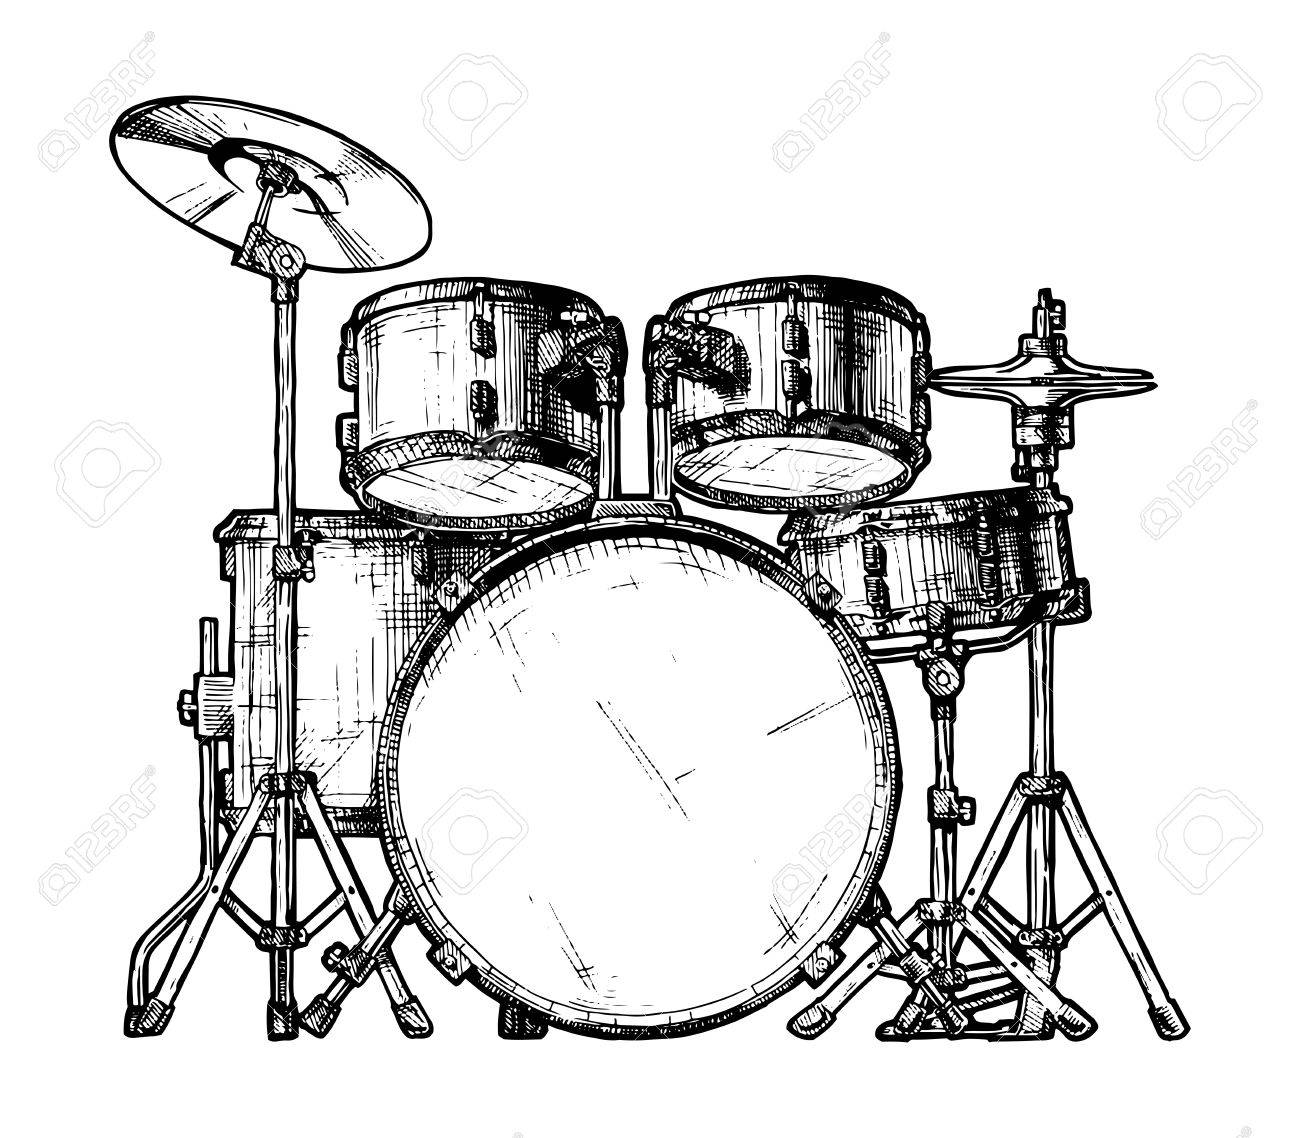 1300x1138 Hand Drawn Illustration Of Drum Kit. Isolated On White Royalty